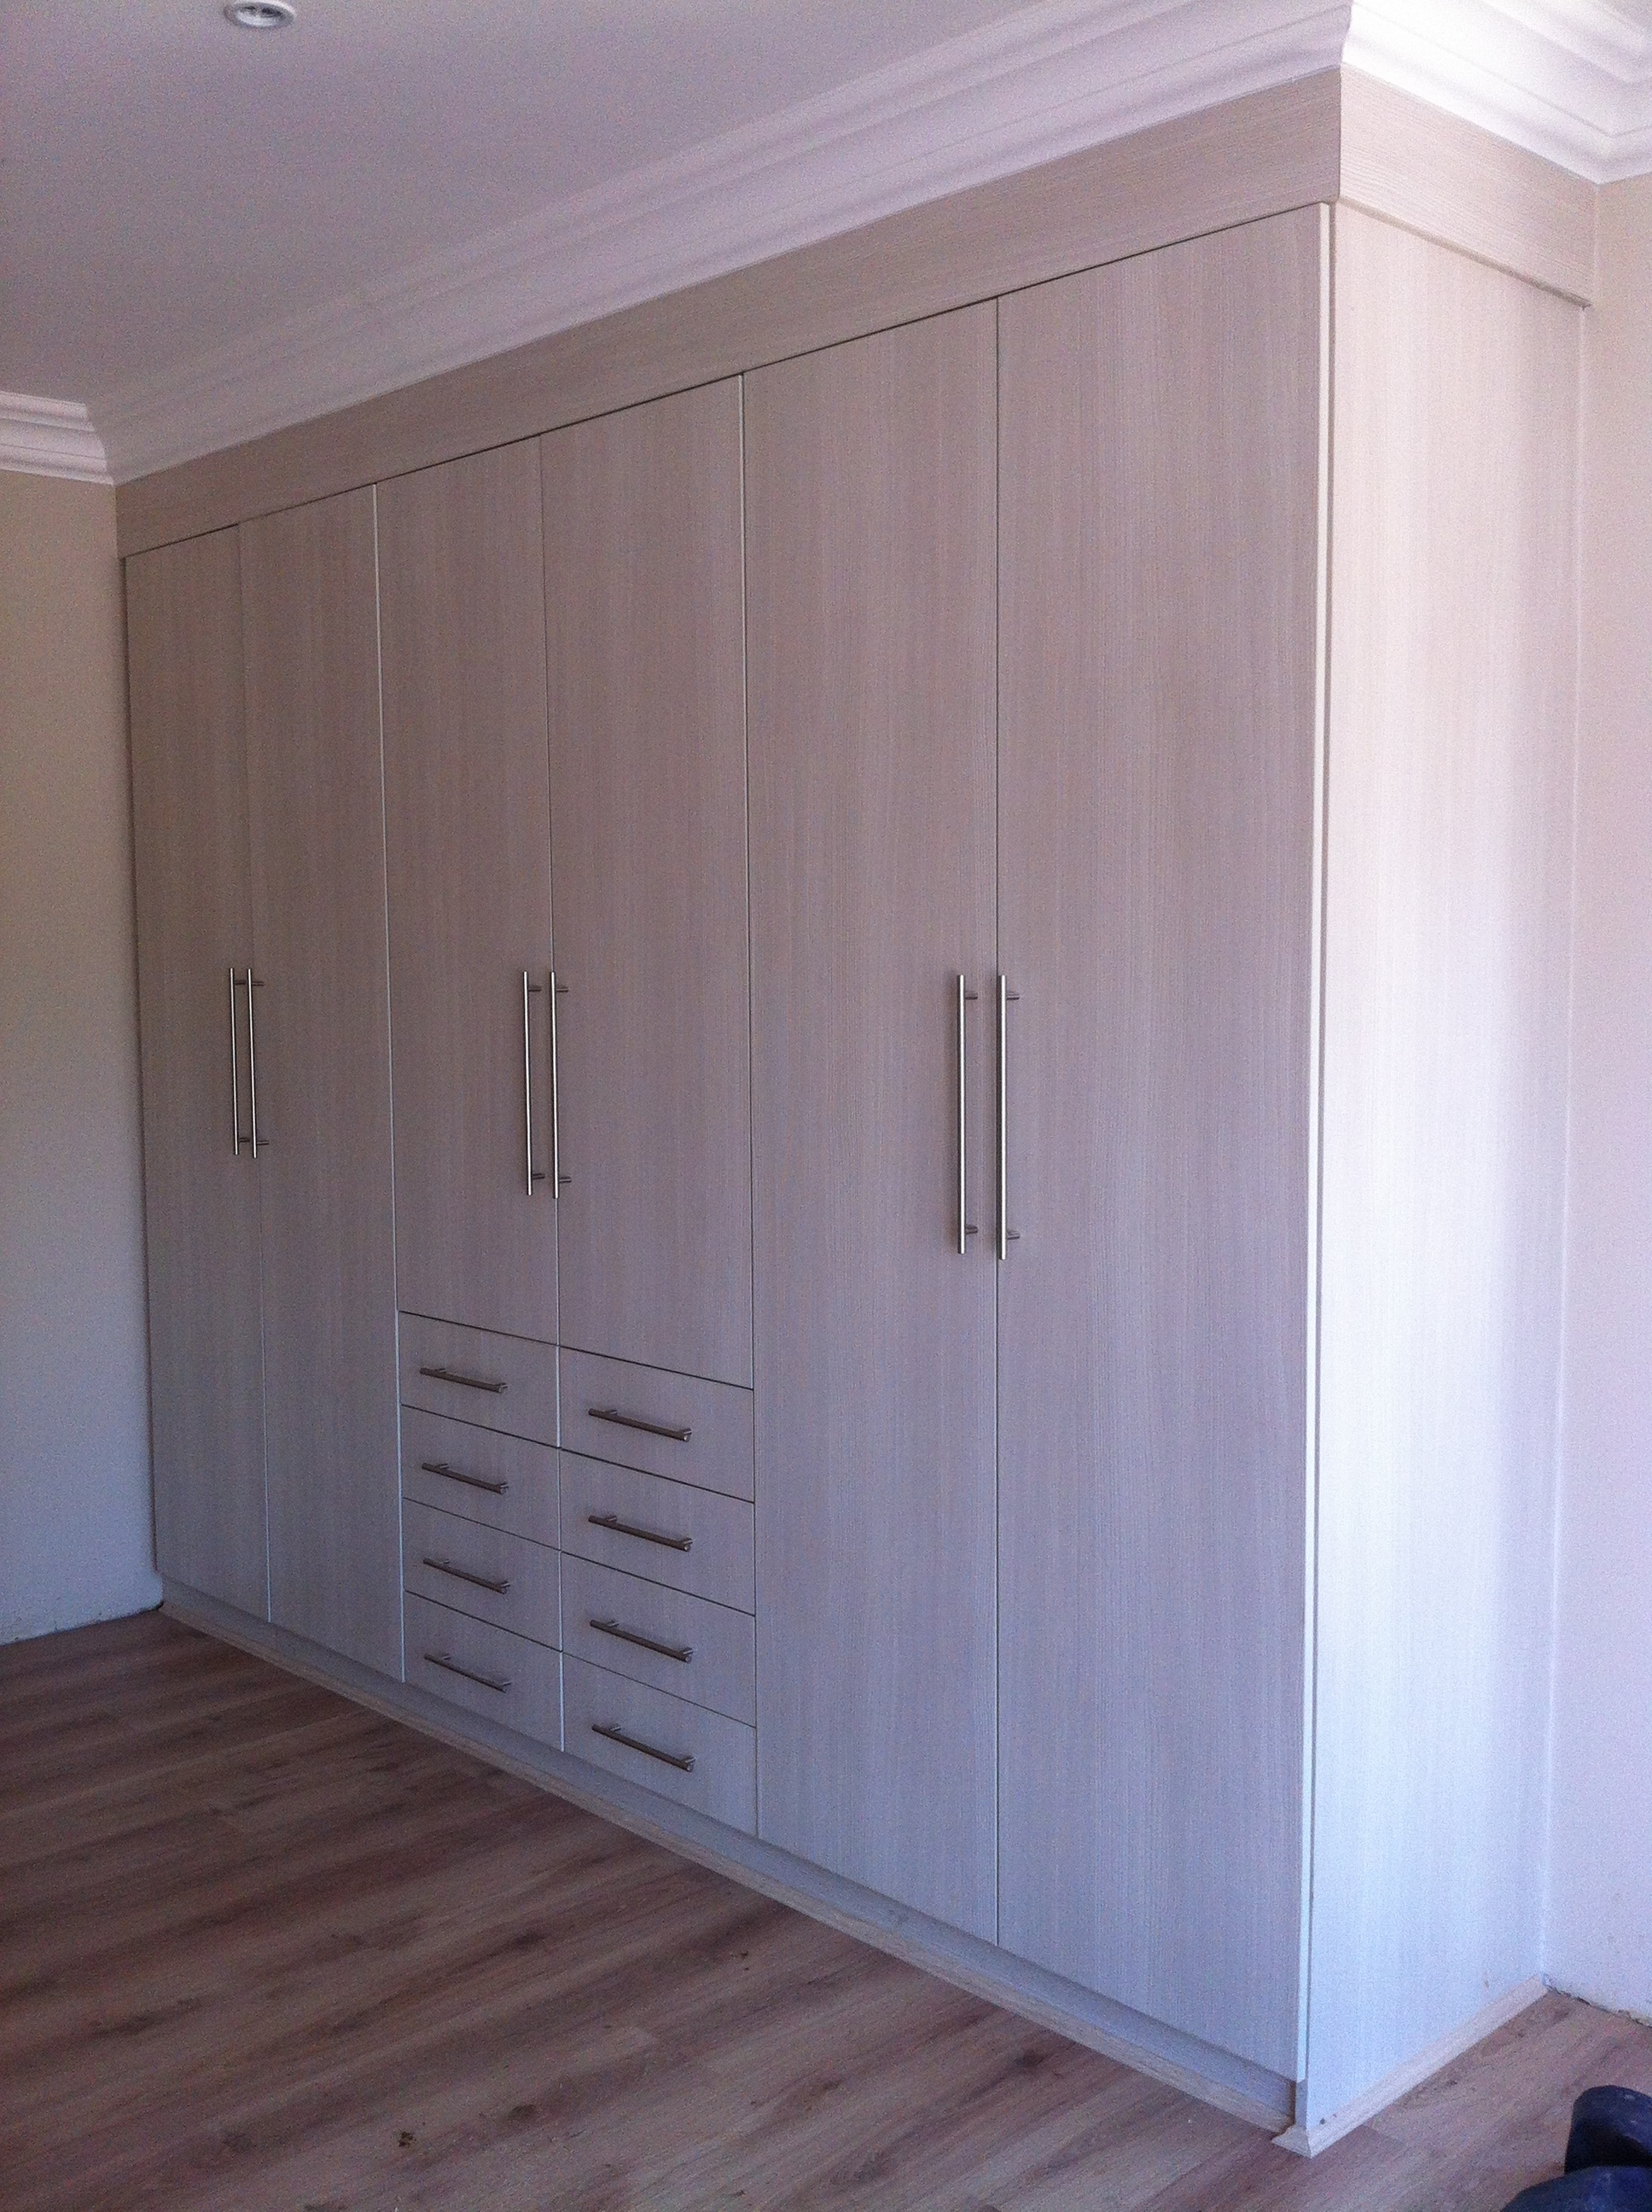 Newest Built In Cupboard – The Woodworker Pertaining To Built In Cupboards (View 15 of 15)